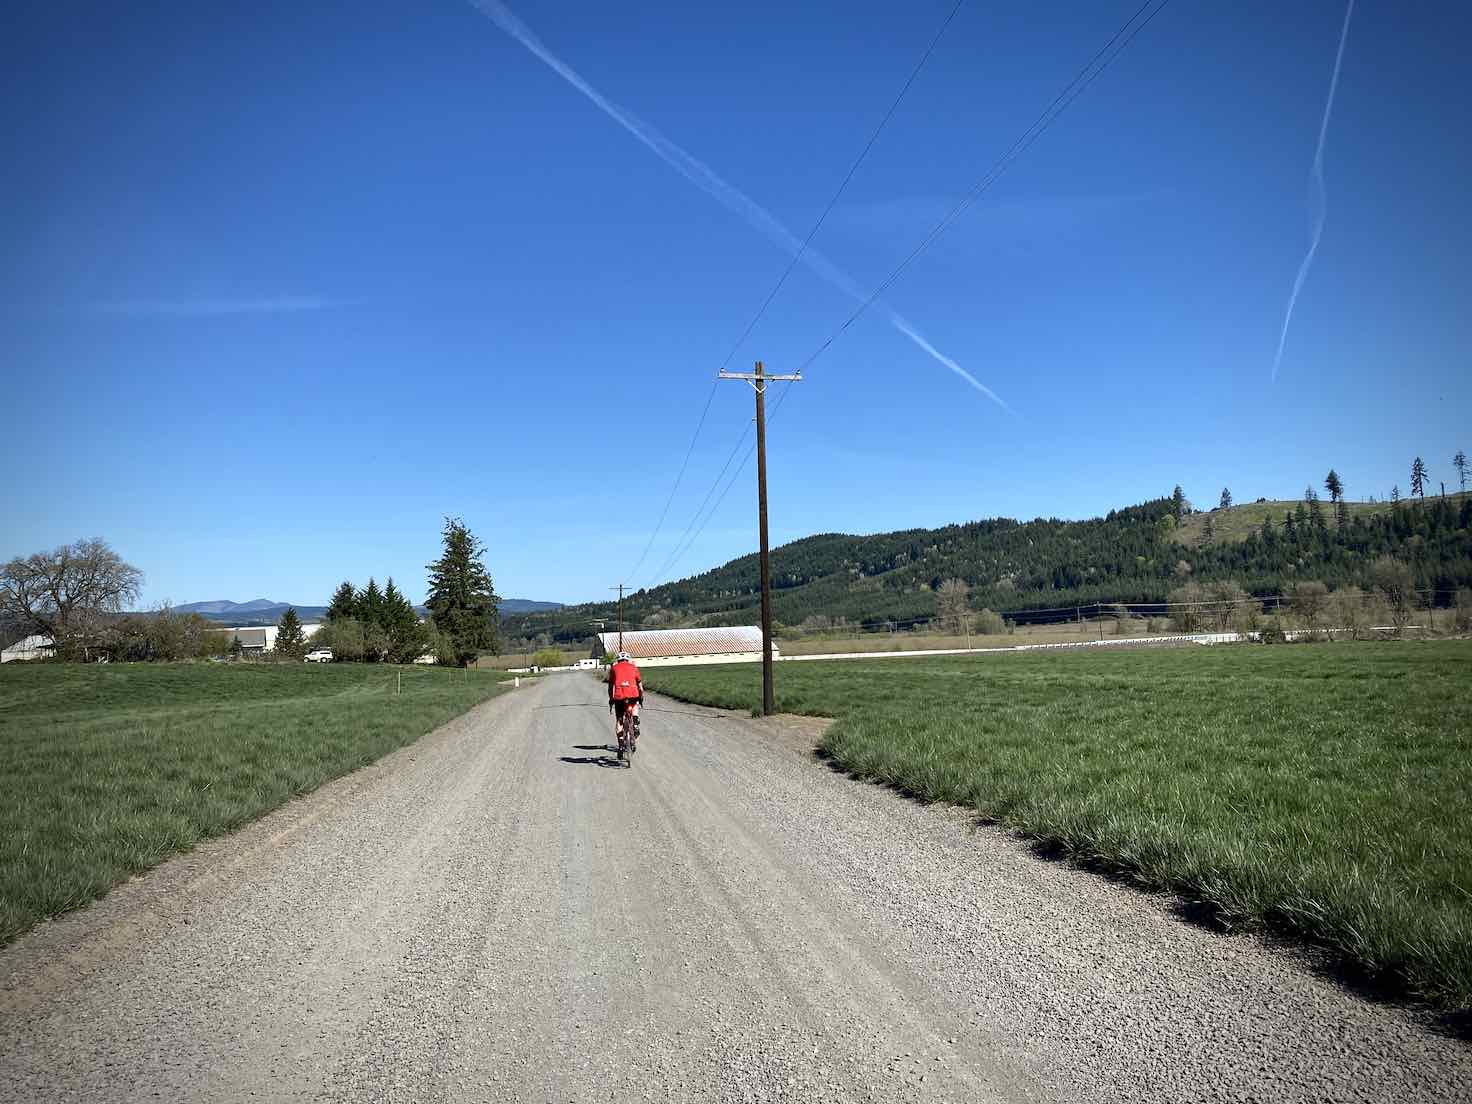 Gravel cyclist riding between fields of green crops near Yamhill, Oregon.